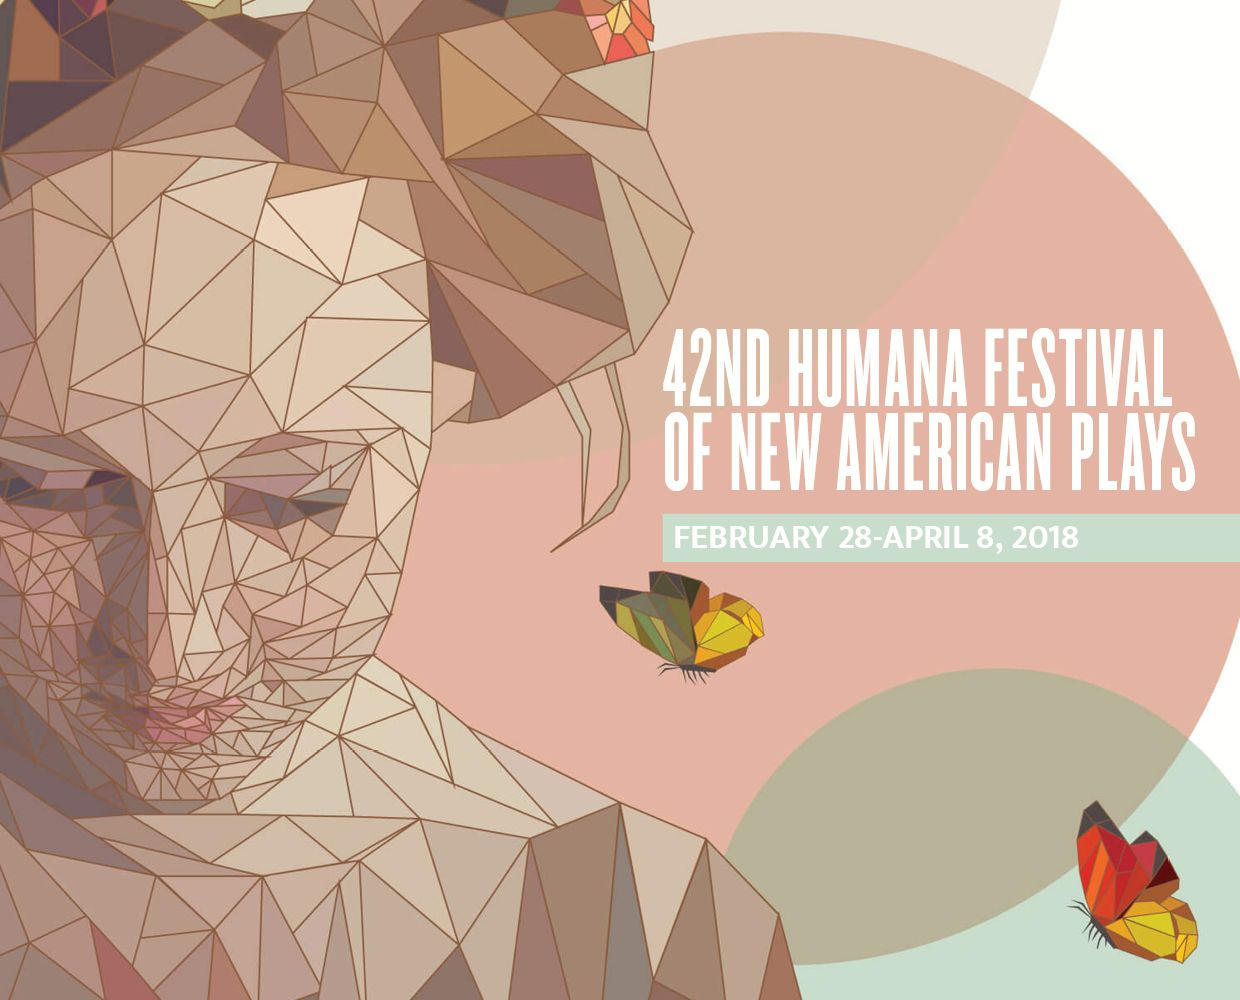 42ND HUMANA FESTIVAL featuring GOD SAID THIS